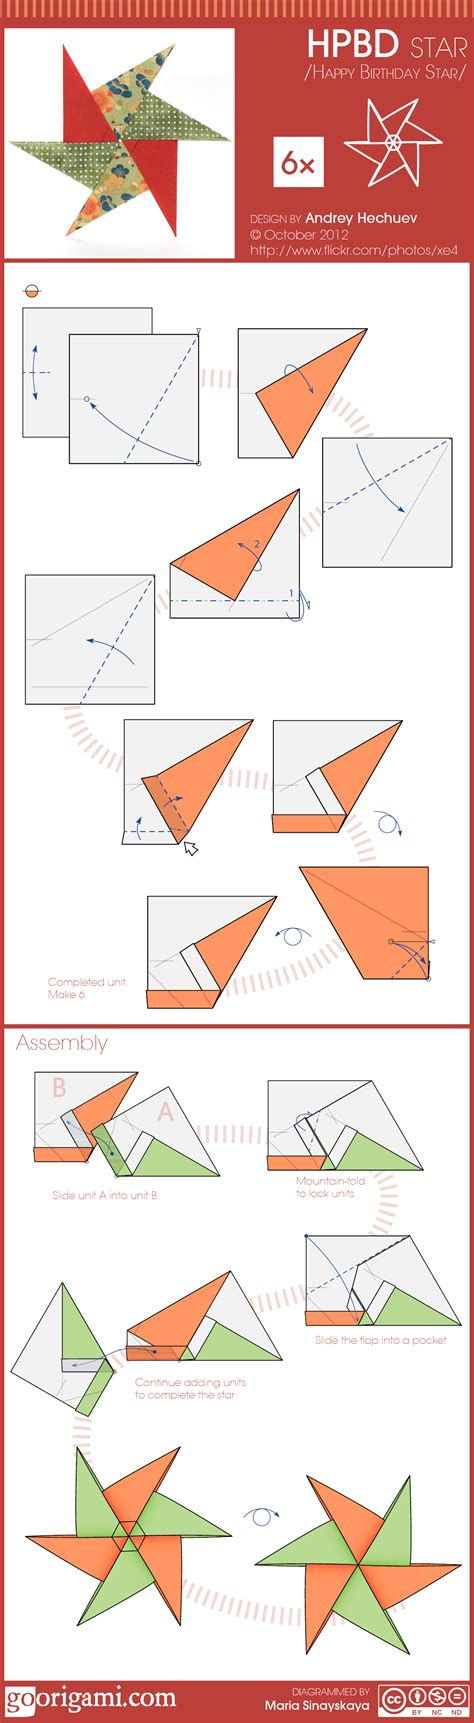 German Paper Folding - learn how to fold 6 pointed hpbd origami design by